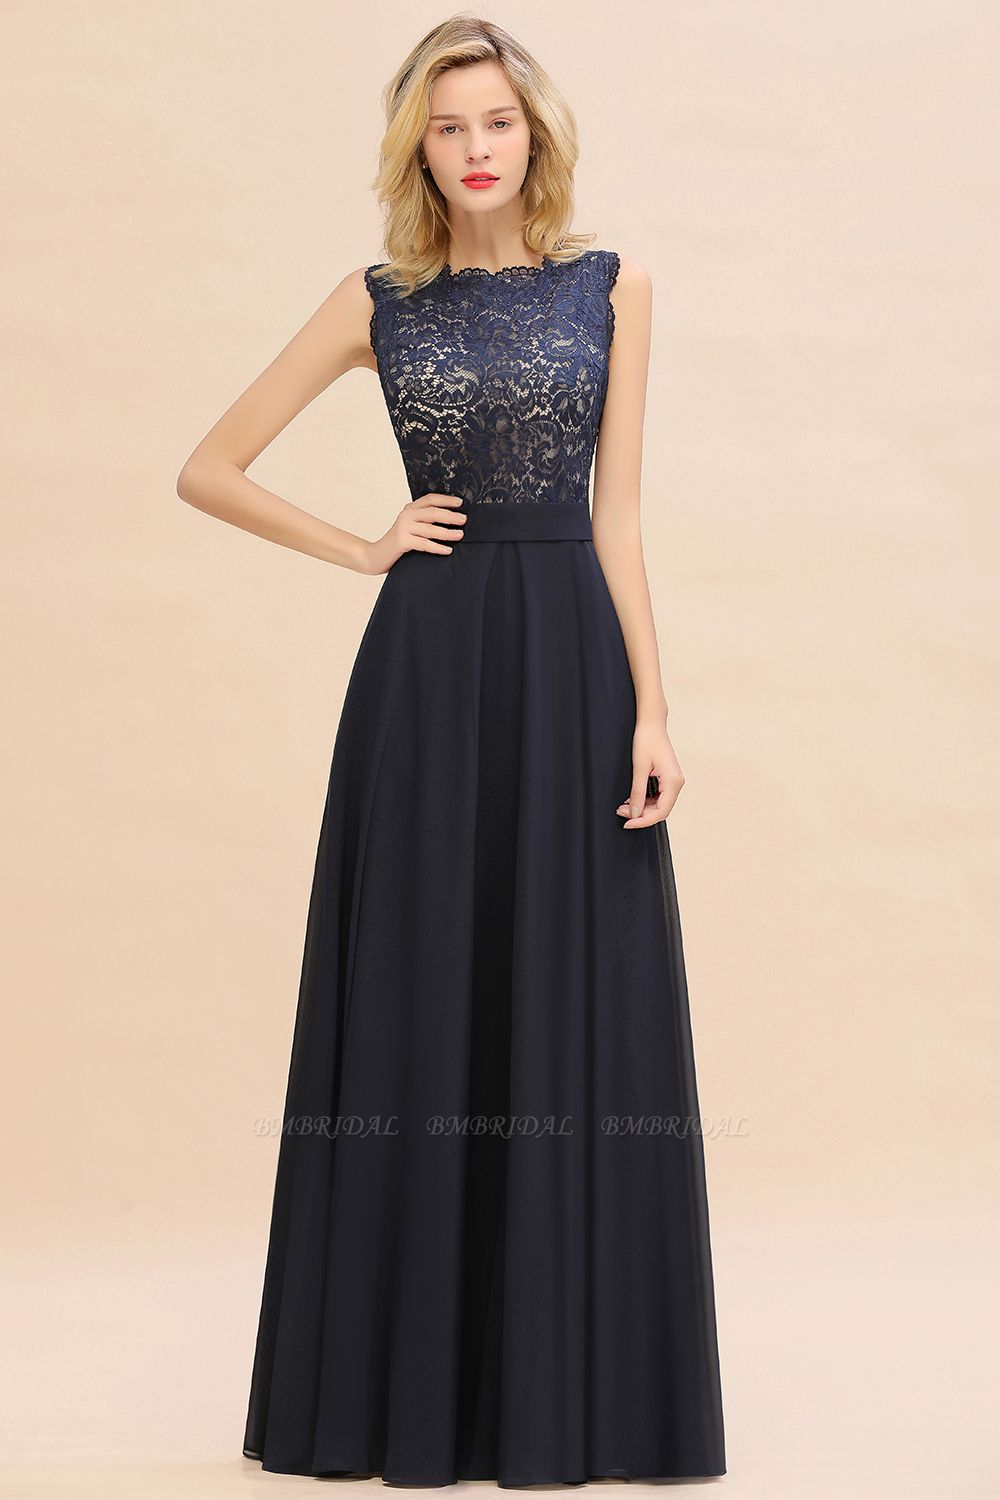 Exquisite Scoop Chiffon Lace Bridesmaid Dresses with V-Back